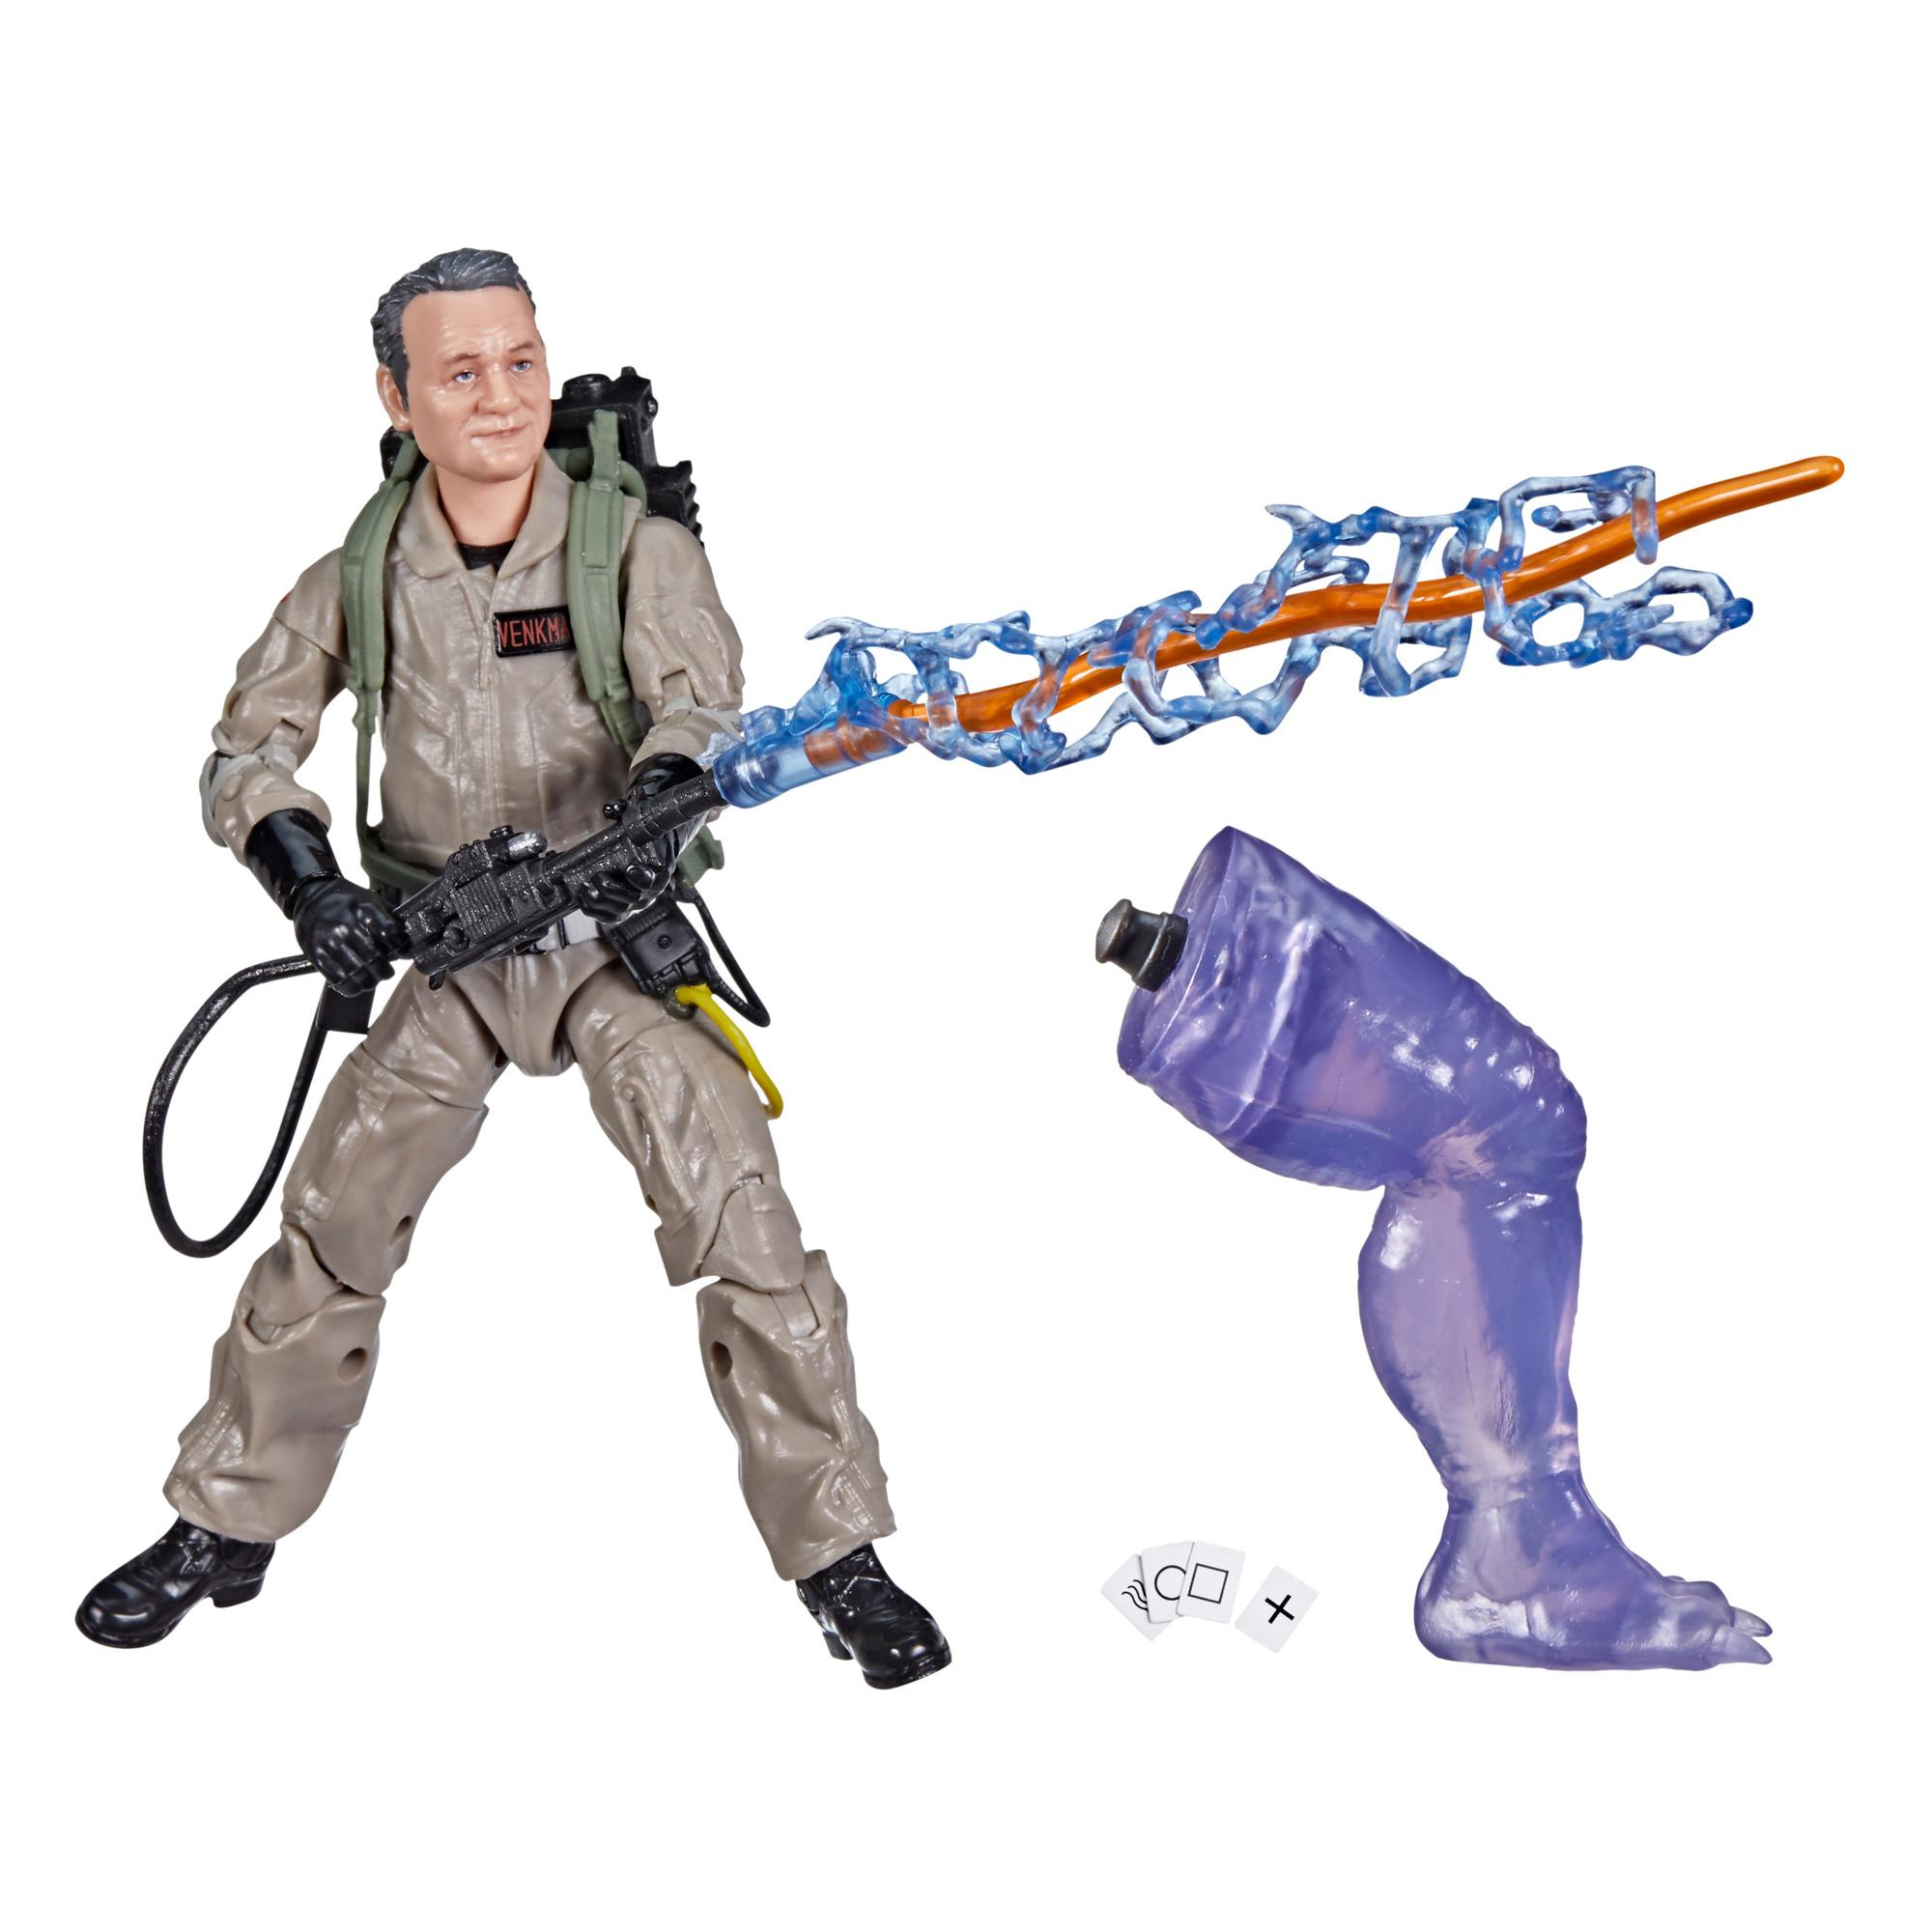 Ghostbusters Plasma Series Peter Venkman Toy 6-Inch-Scale Collectible Ghostbusters: Afterlife Figure, Kids Ages 4 and Up